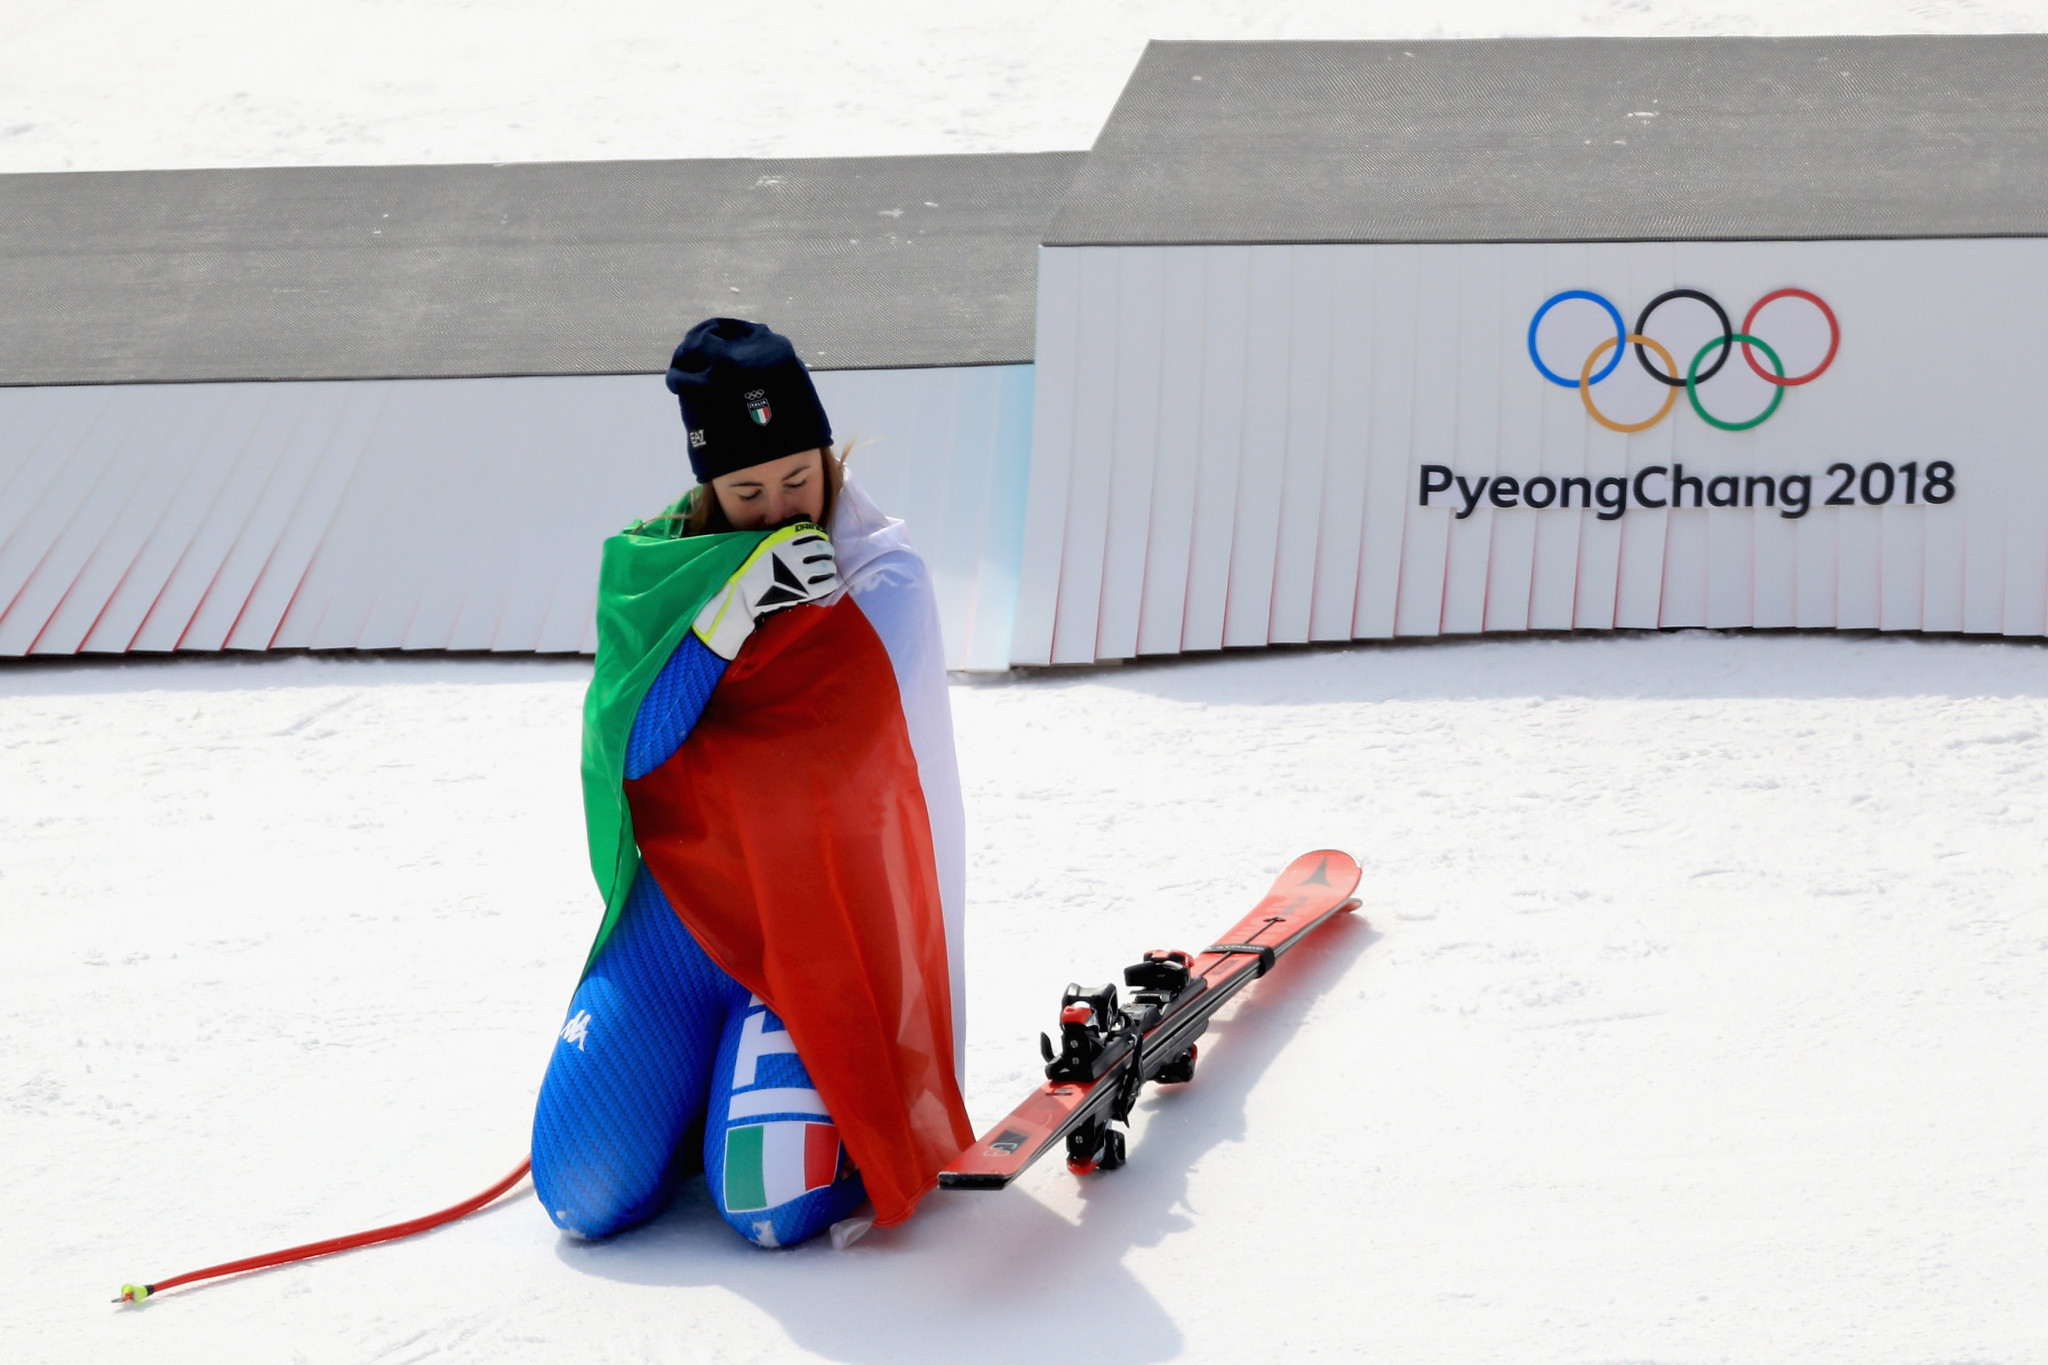 Sofia Goggia won her Olympic title at Pyeongchang 2018 ©Getty Images